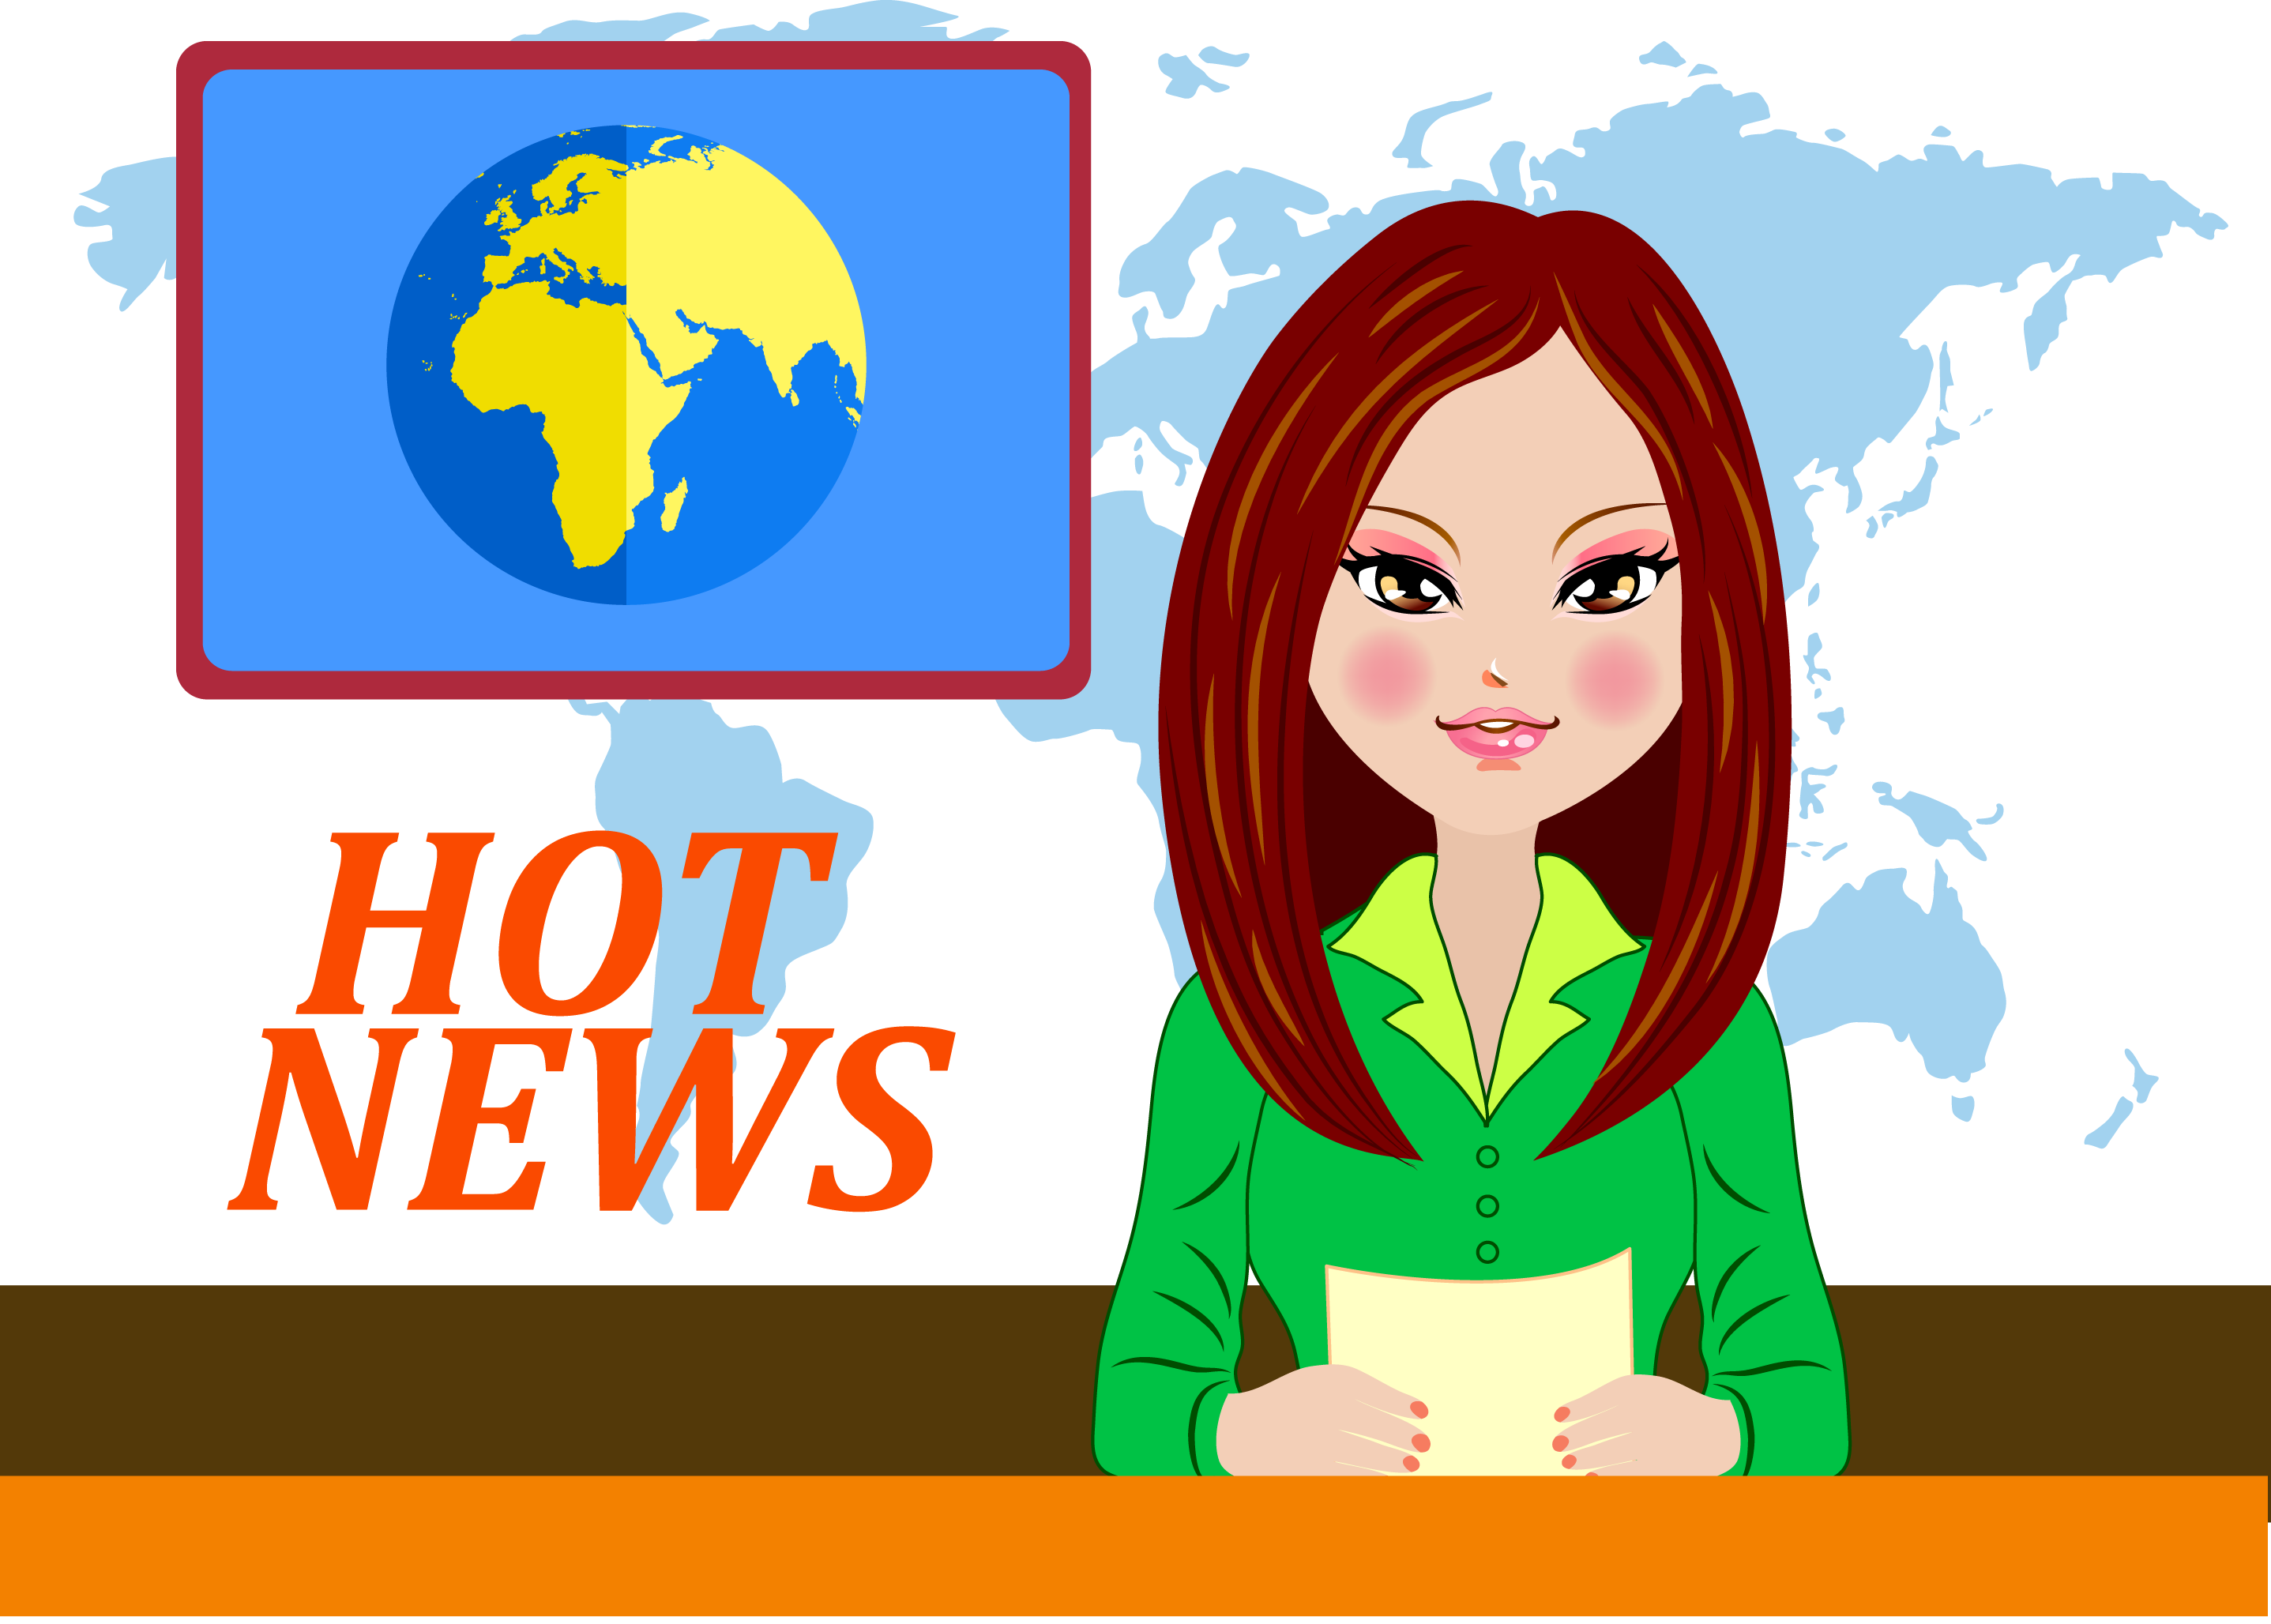 News clipart television news. Cartoon graphic design icon